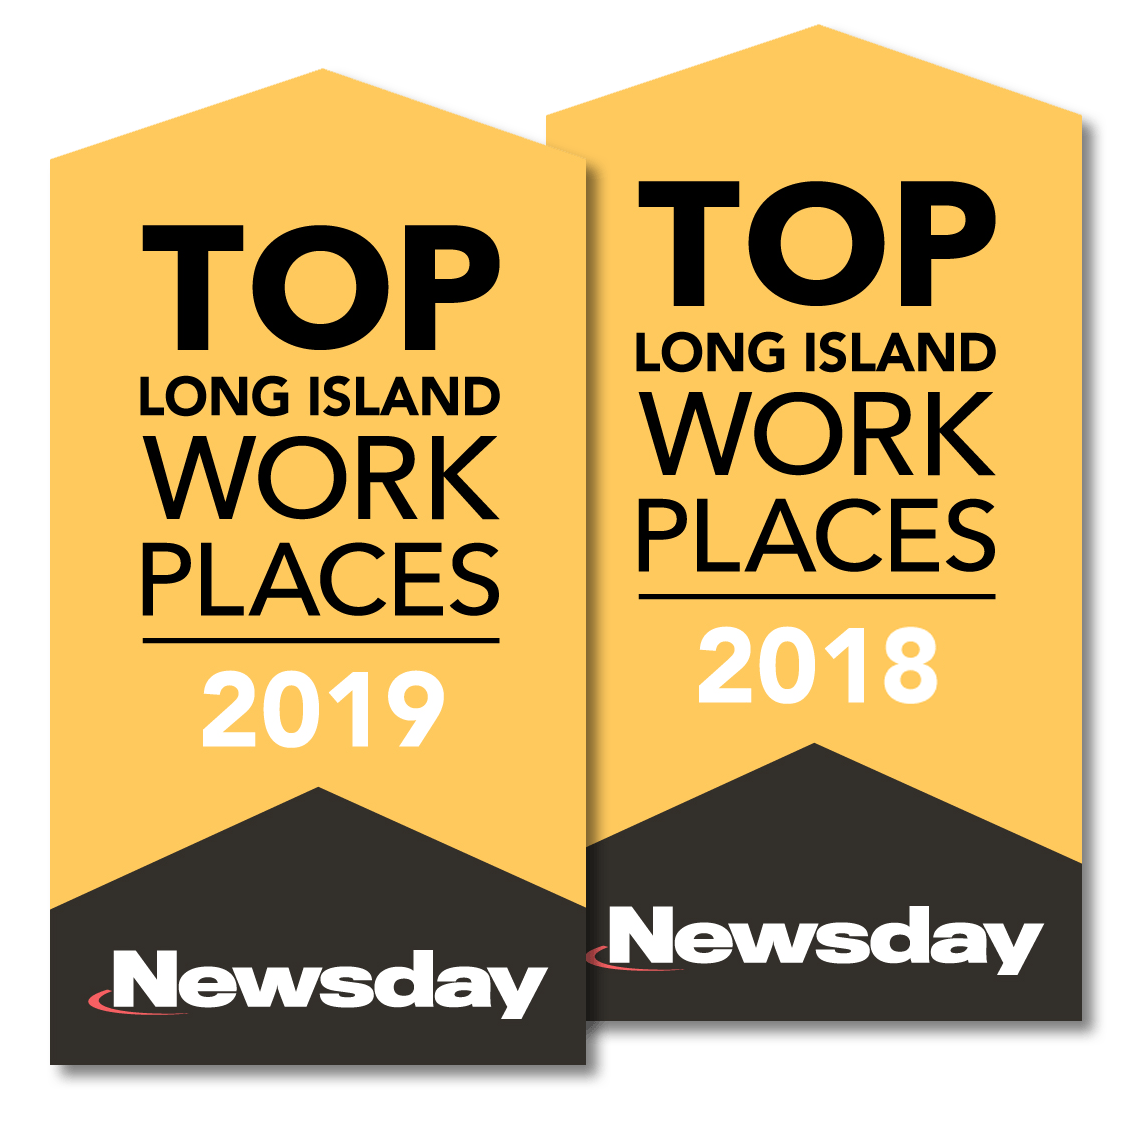 Long Island Work Places 2019